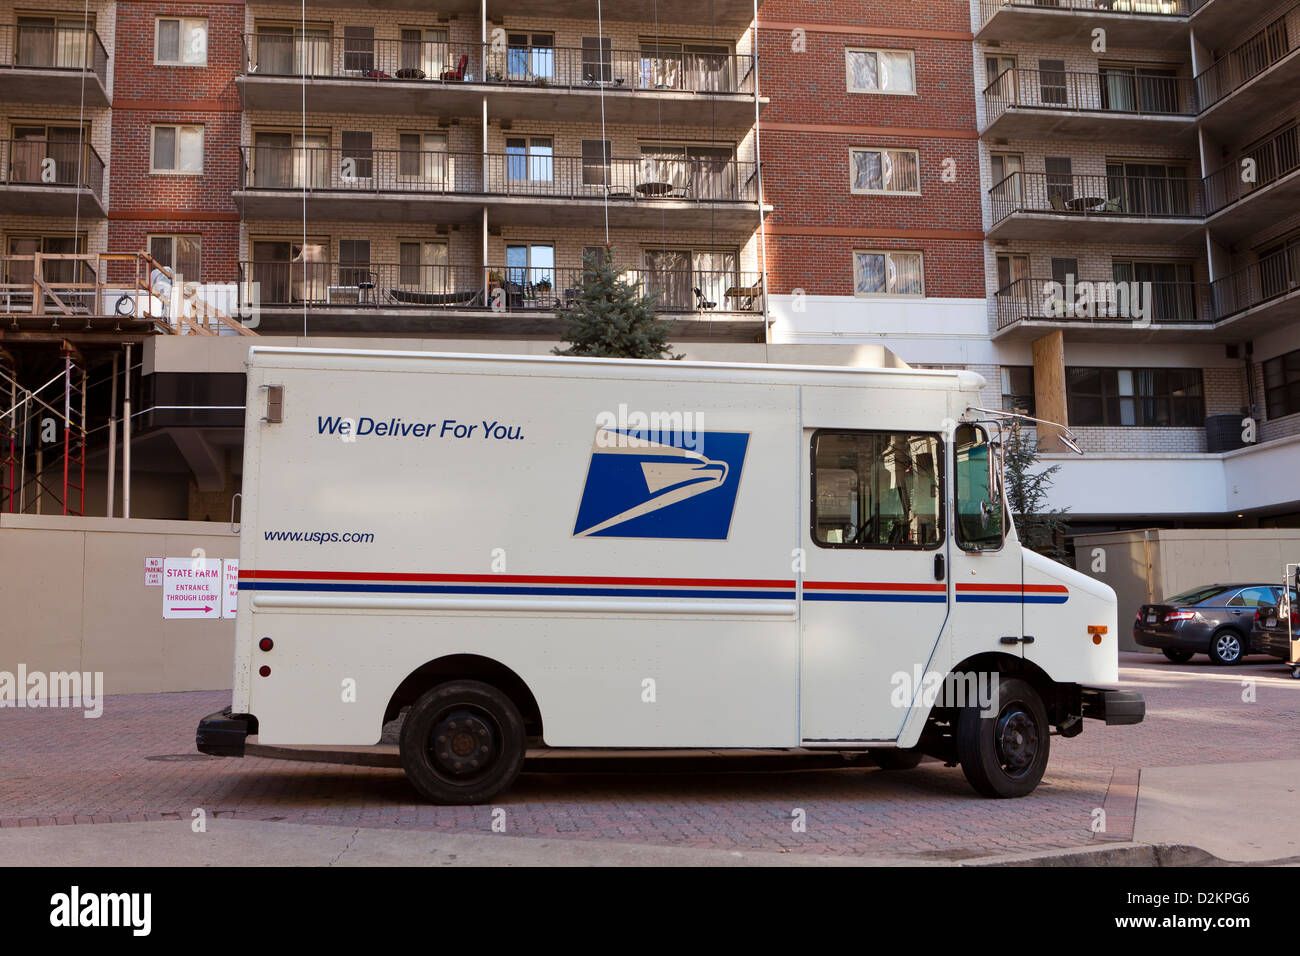 USPS delivery truck parked in front of apartment building - Arlington, Virginia USA - Stock Image